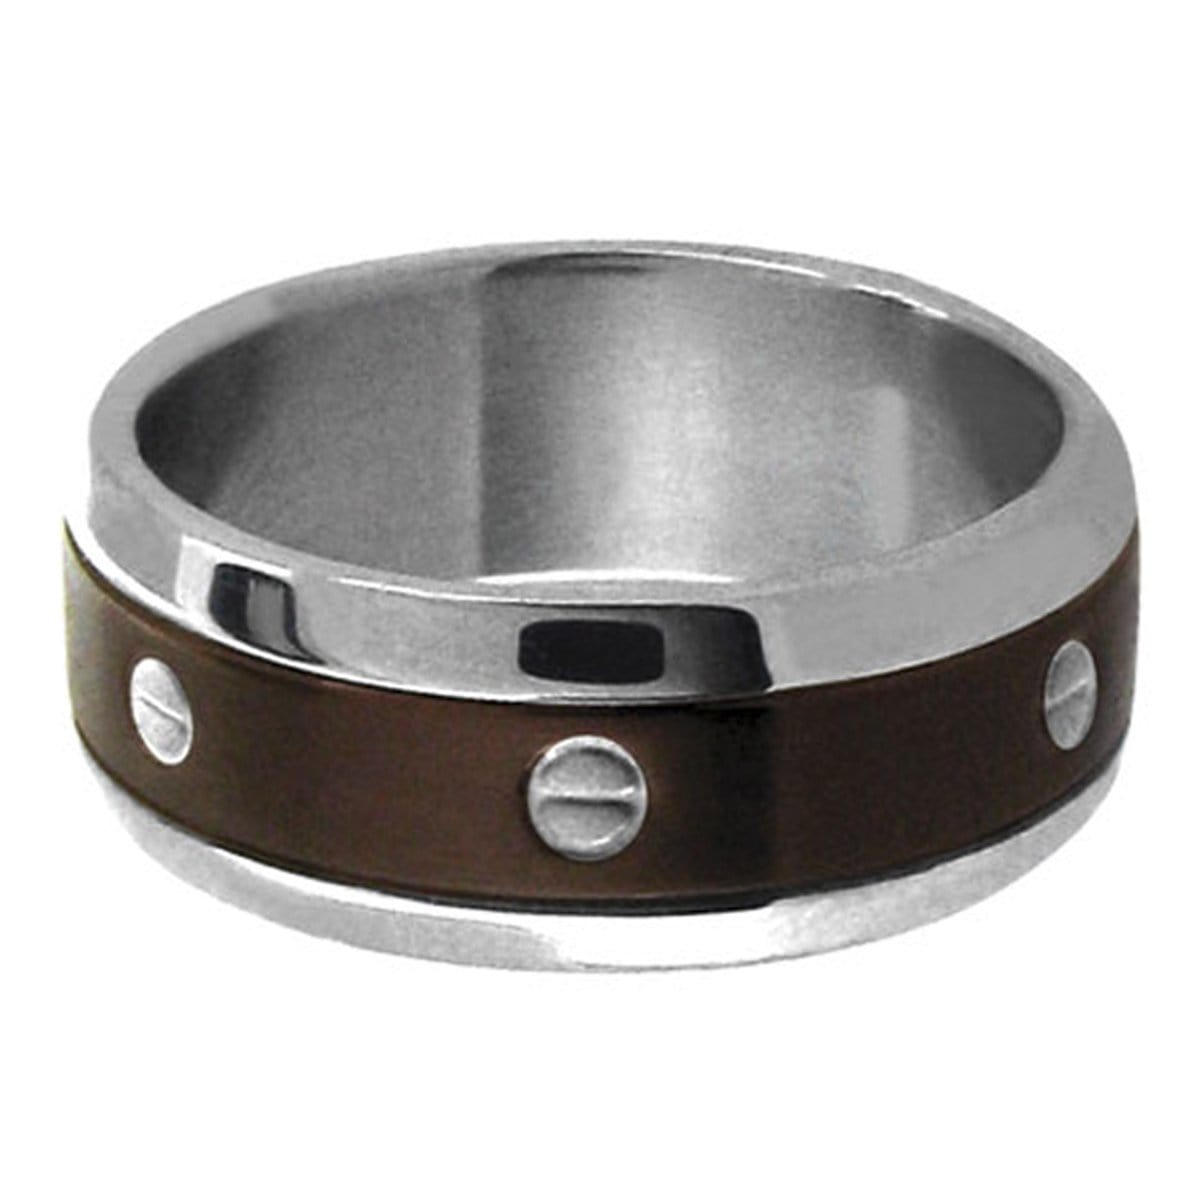 Brown & Silver Stainless Steel with Screw Pattern Ring